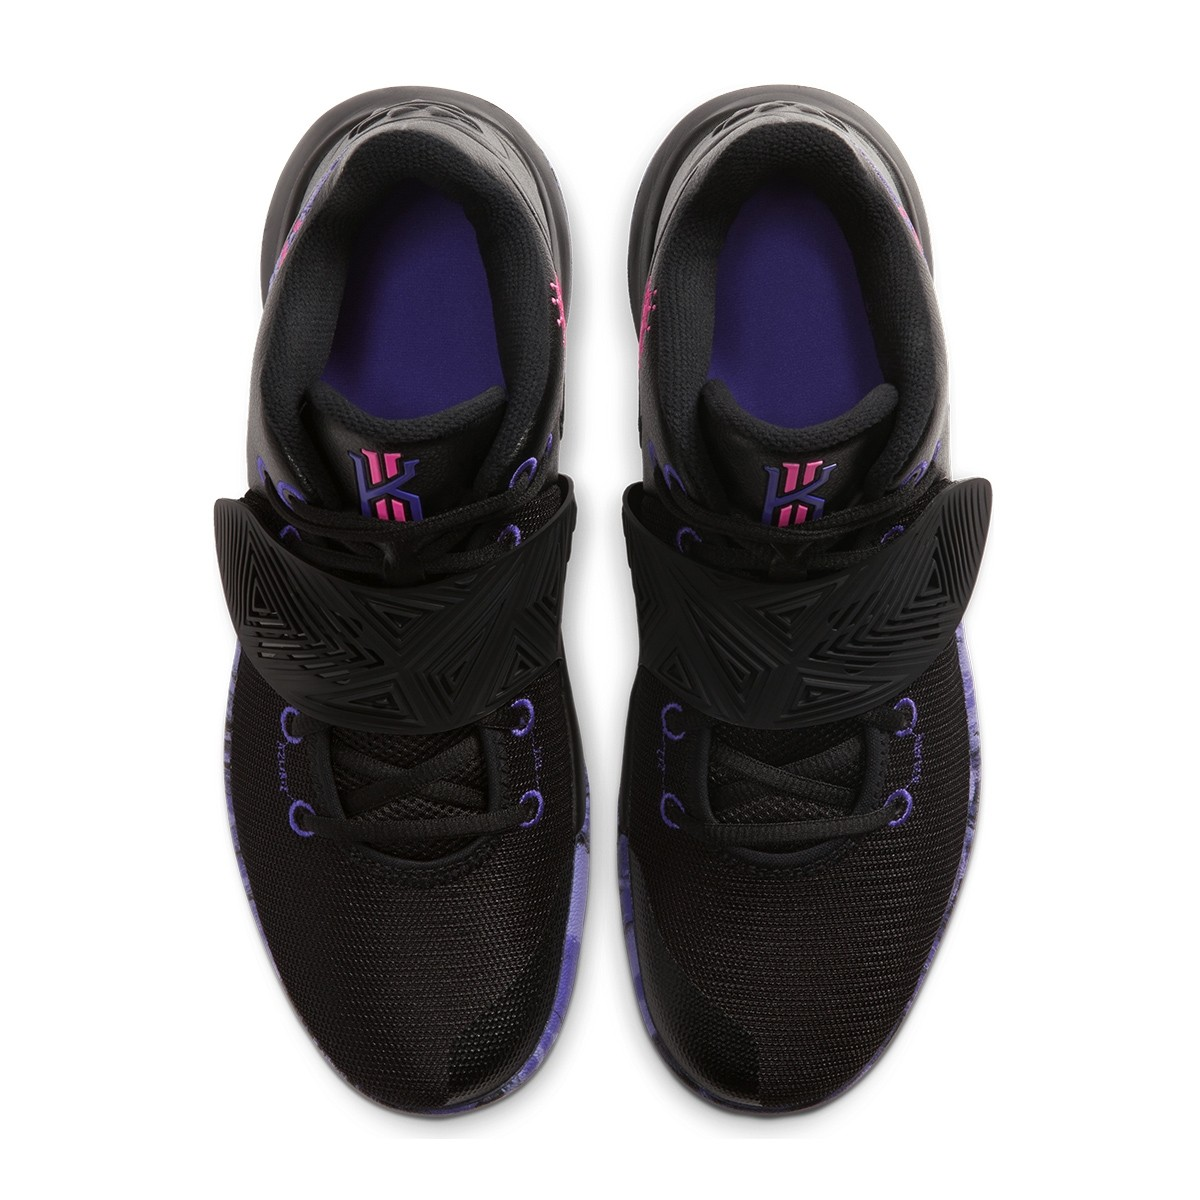 Nike Kyrie Flytrap III Jr 'Fierce Purple'-BQ3060-006-JR